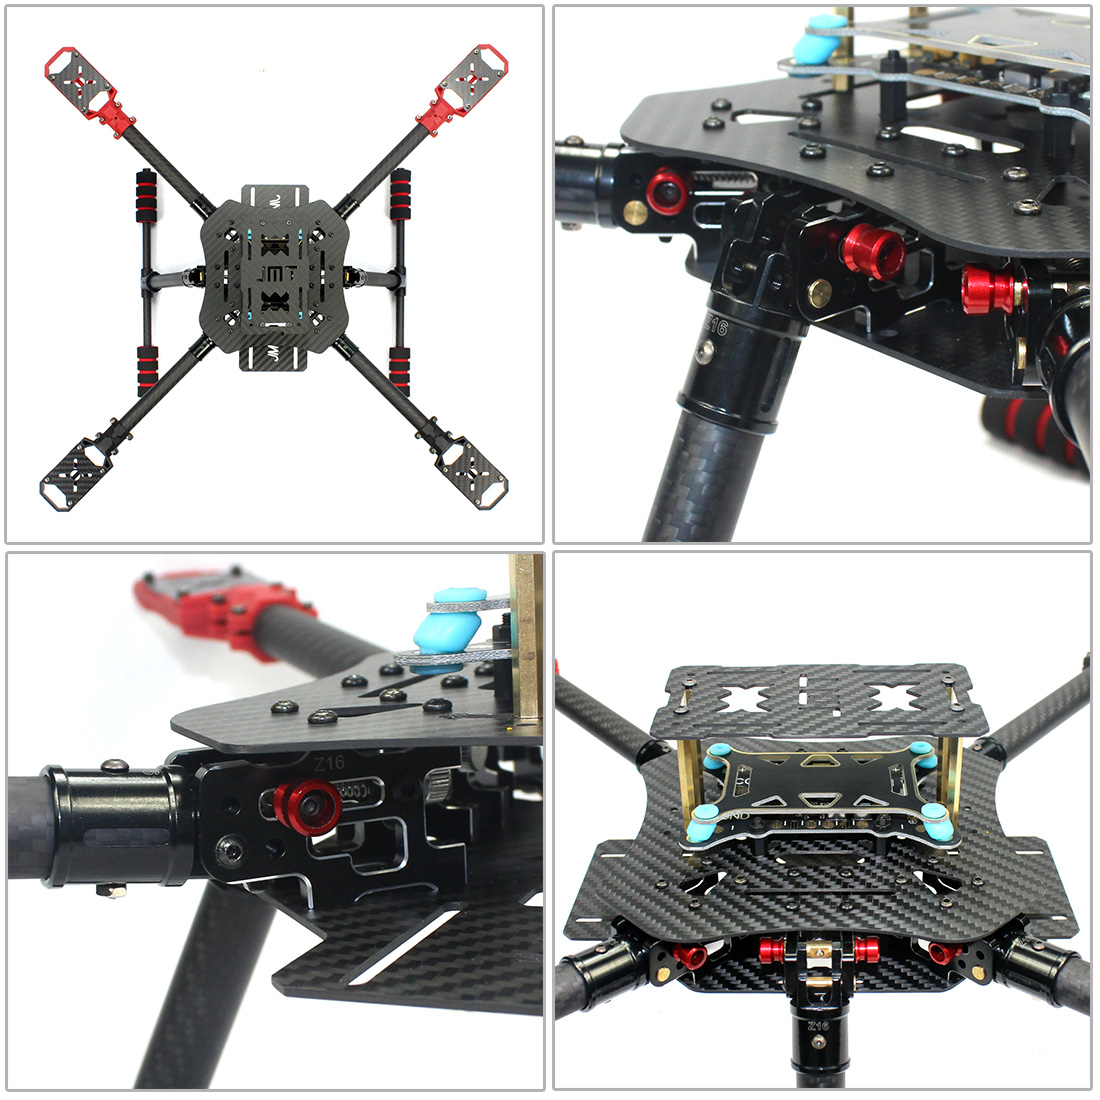 Diy Drone Software Diy Gps Drone X4 460mm Umbrella Foldable Rc Quadcopter 4 Axis Arf Unassemble At10 Apm2 8 Fpv Aircraft With Gimbal